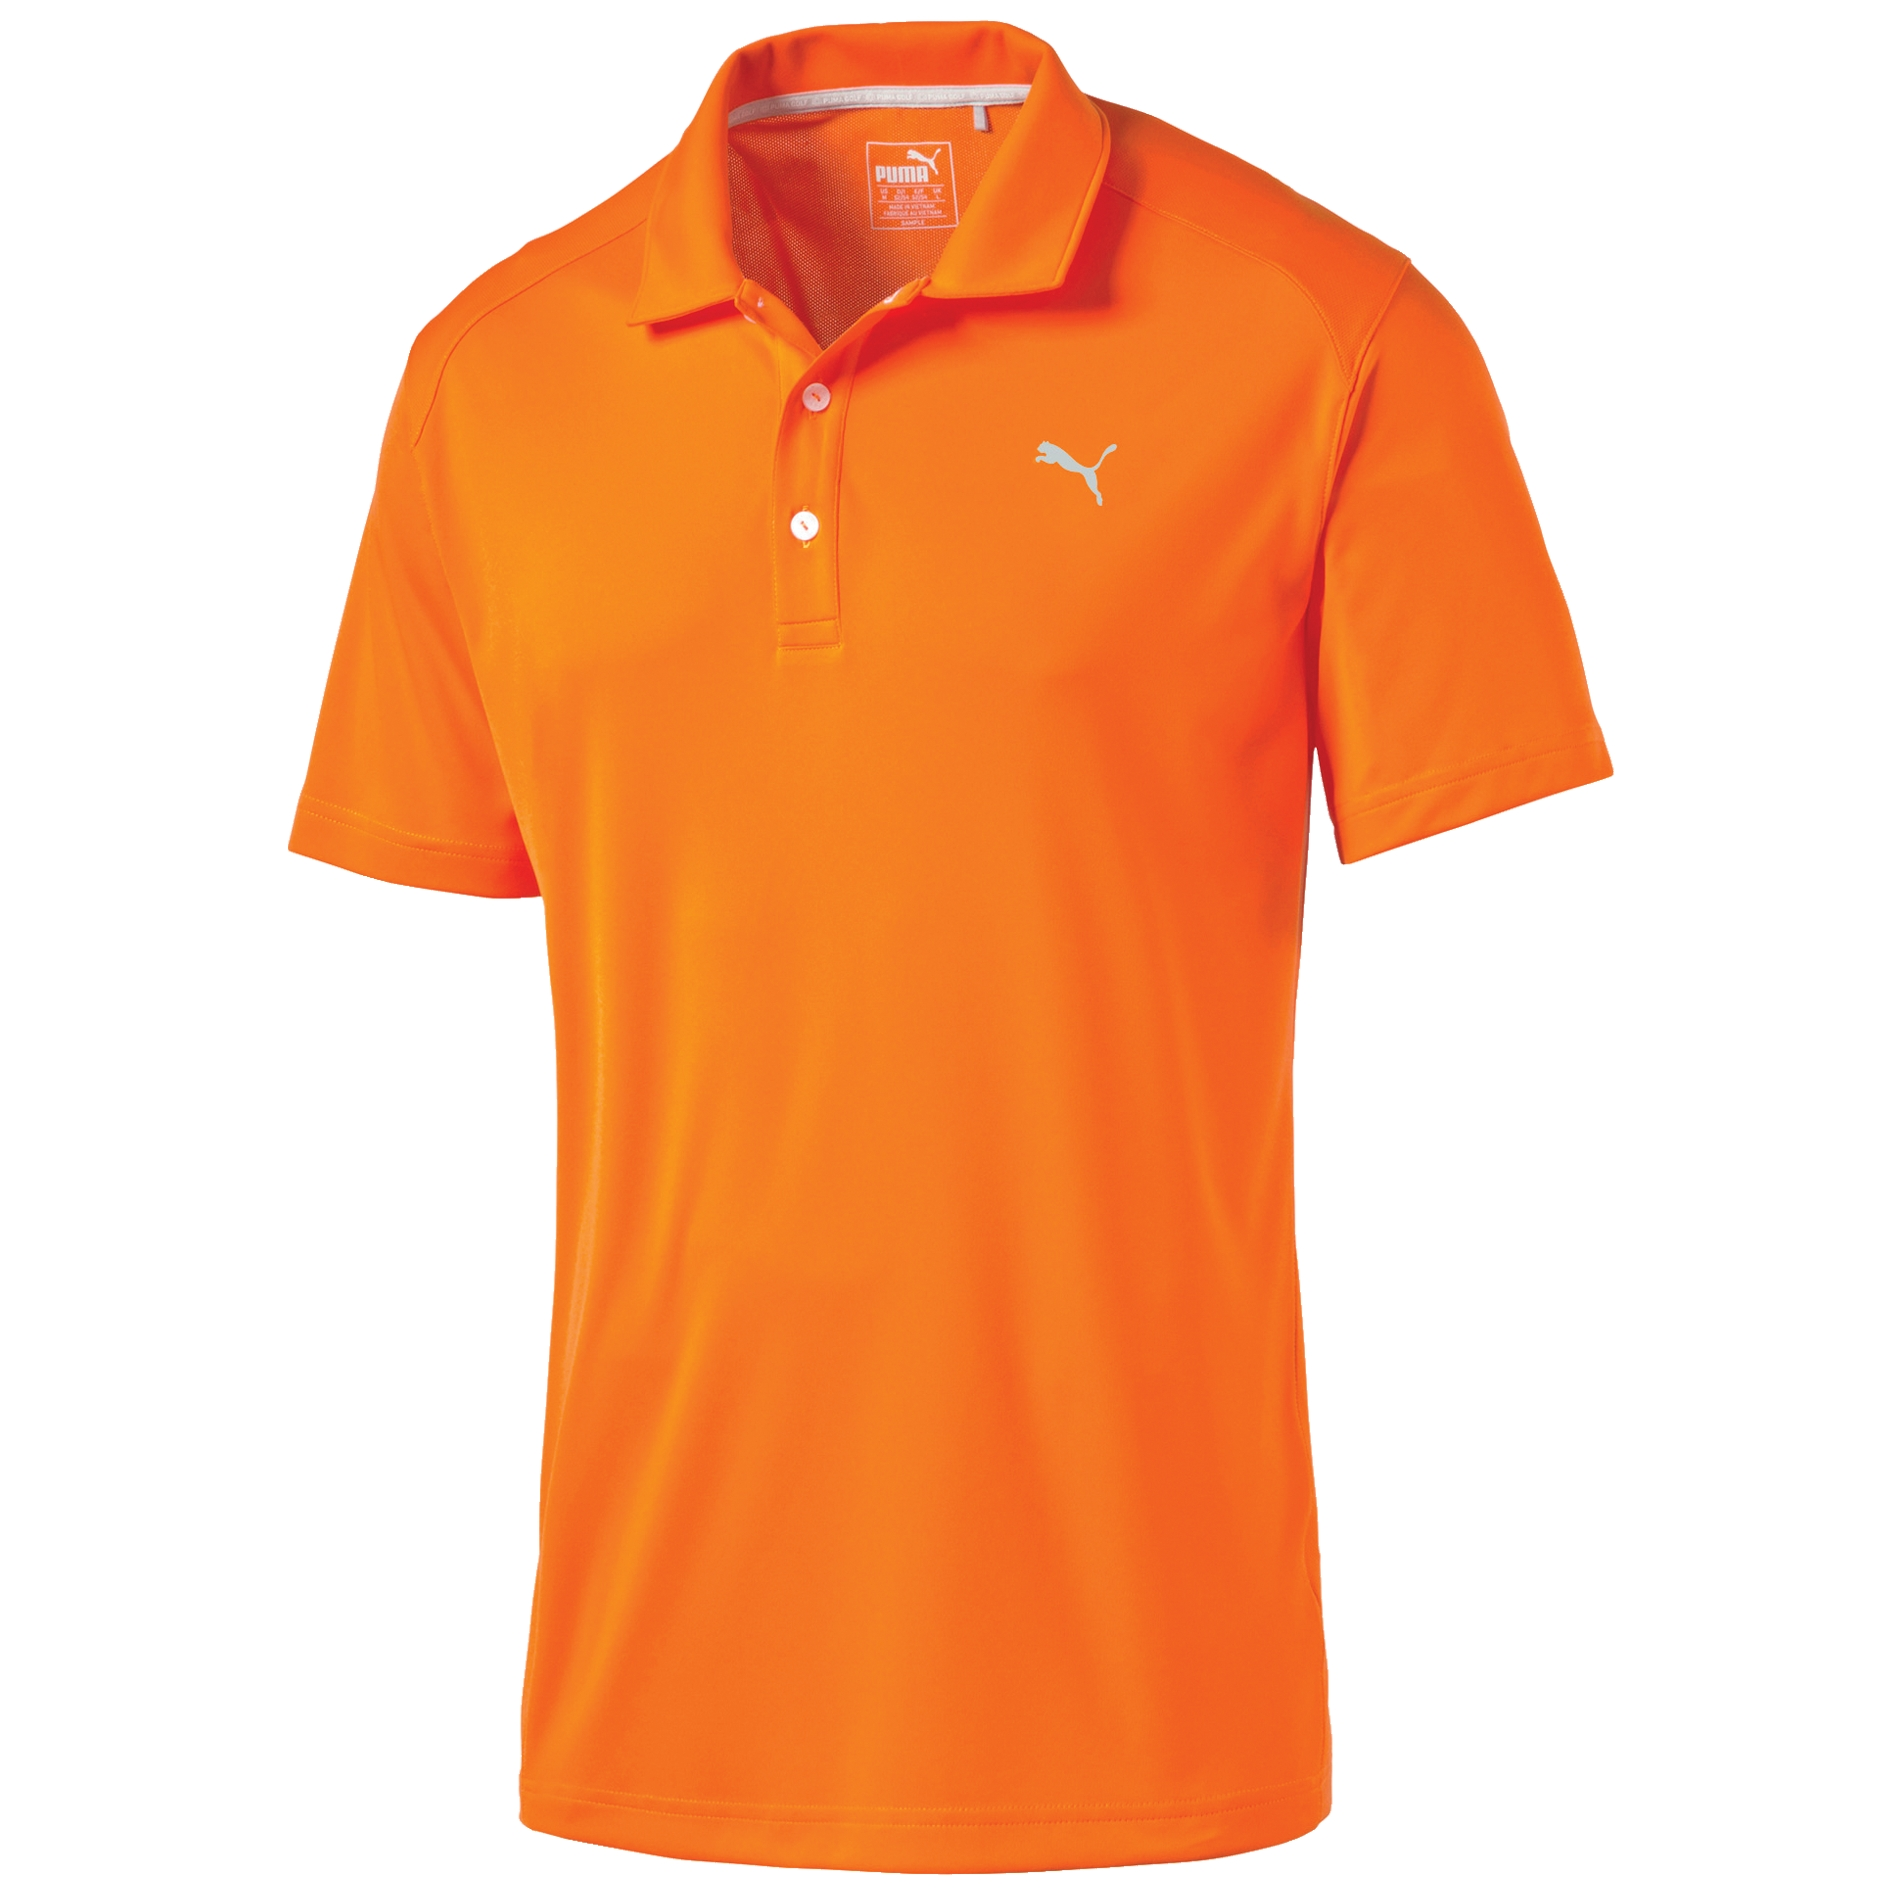 PLAYERA POLO GOLF PUMA HOM POUNCE XG-NR d0a66284a1800